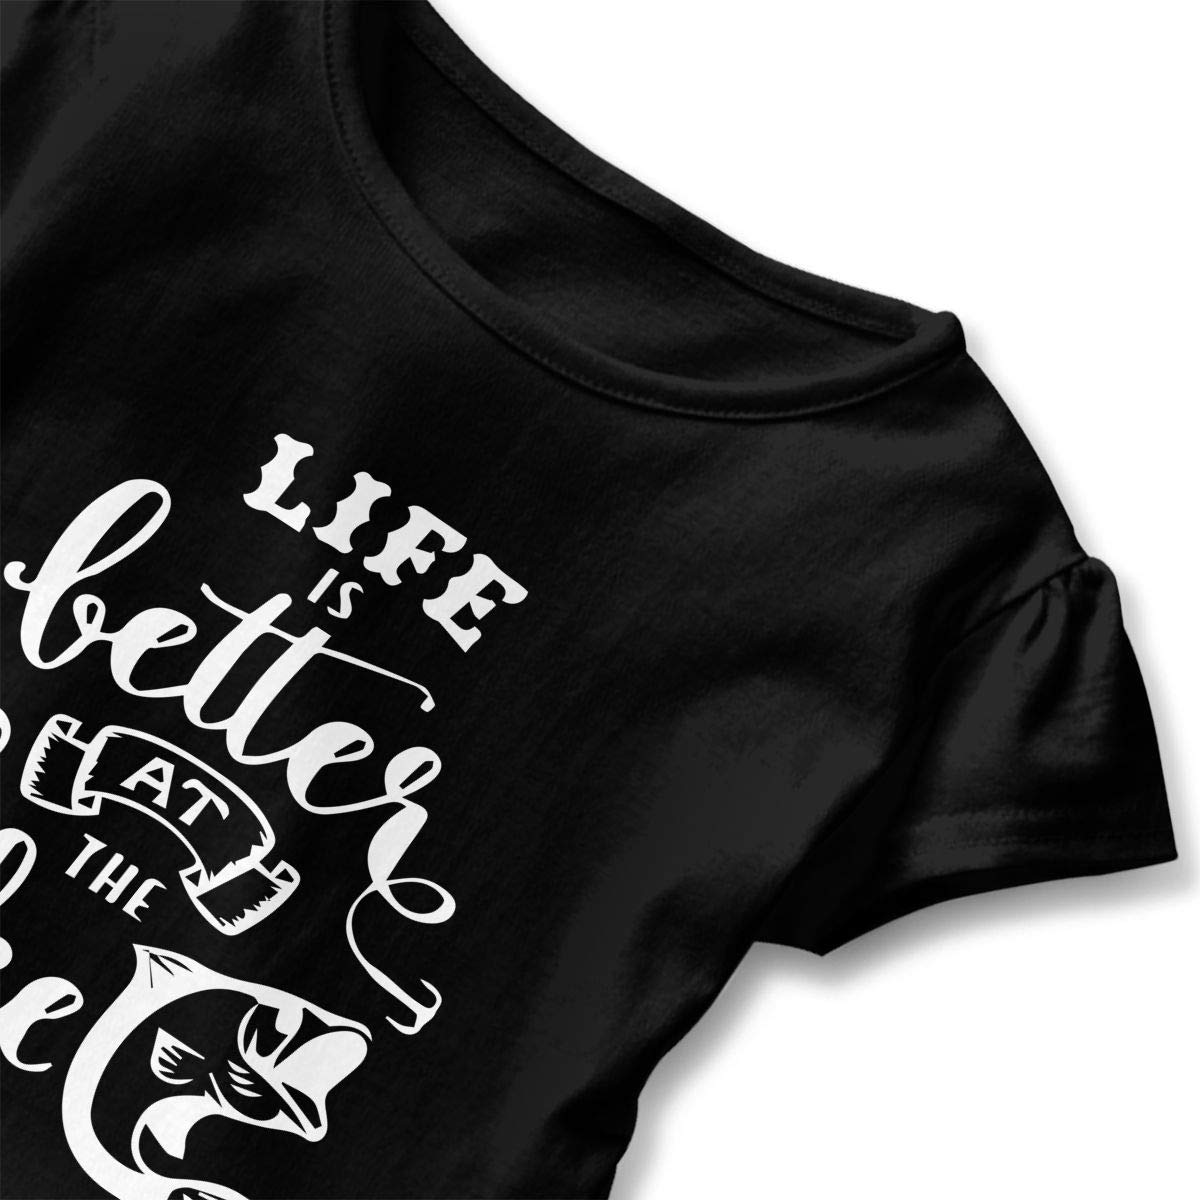 HYBDX9T Little Girls Life is Better at The Lake Funny Short Sleeve Cotton T Shirts Basic Tops Tee Clothes